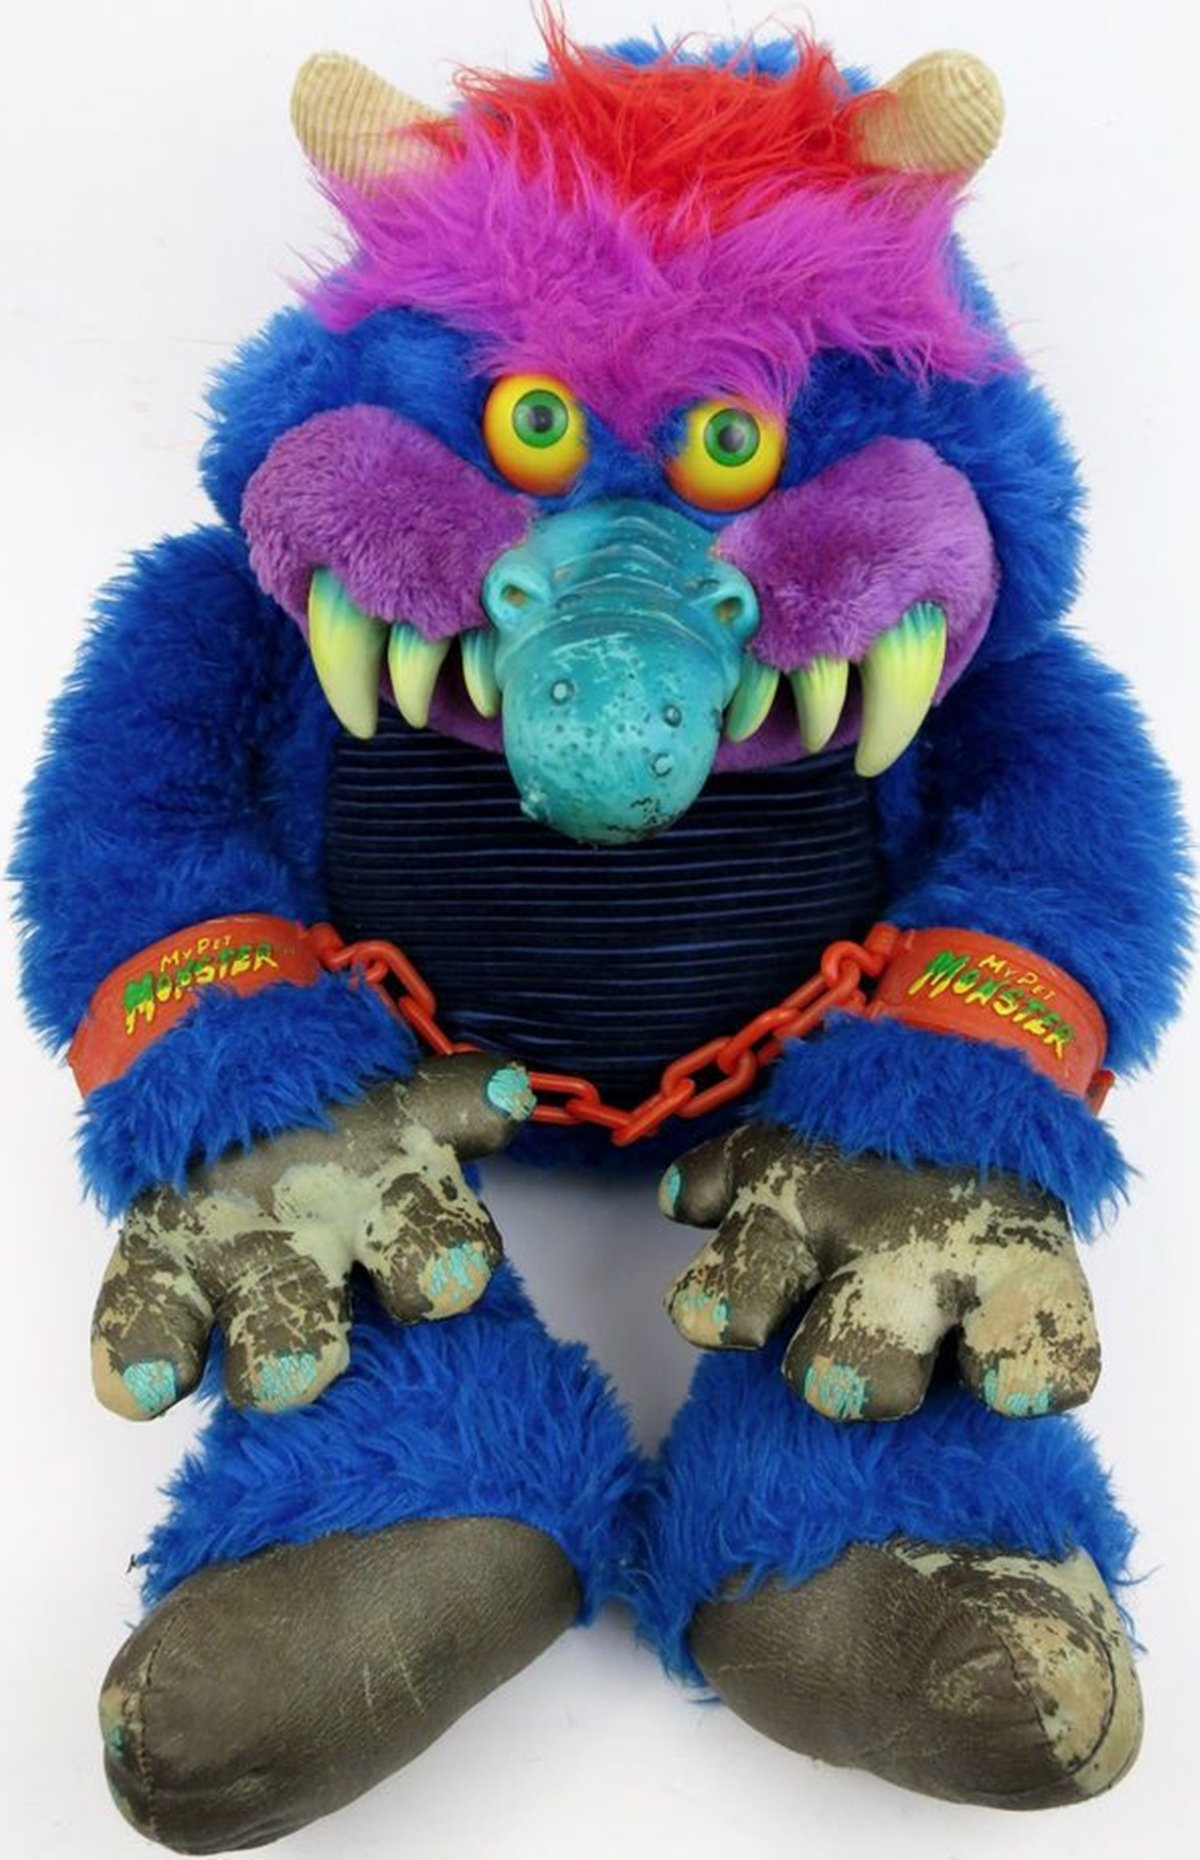 8 35 QUIZ: How Many Of These 15 Cuddly Toys Did YOU Own As A Child?